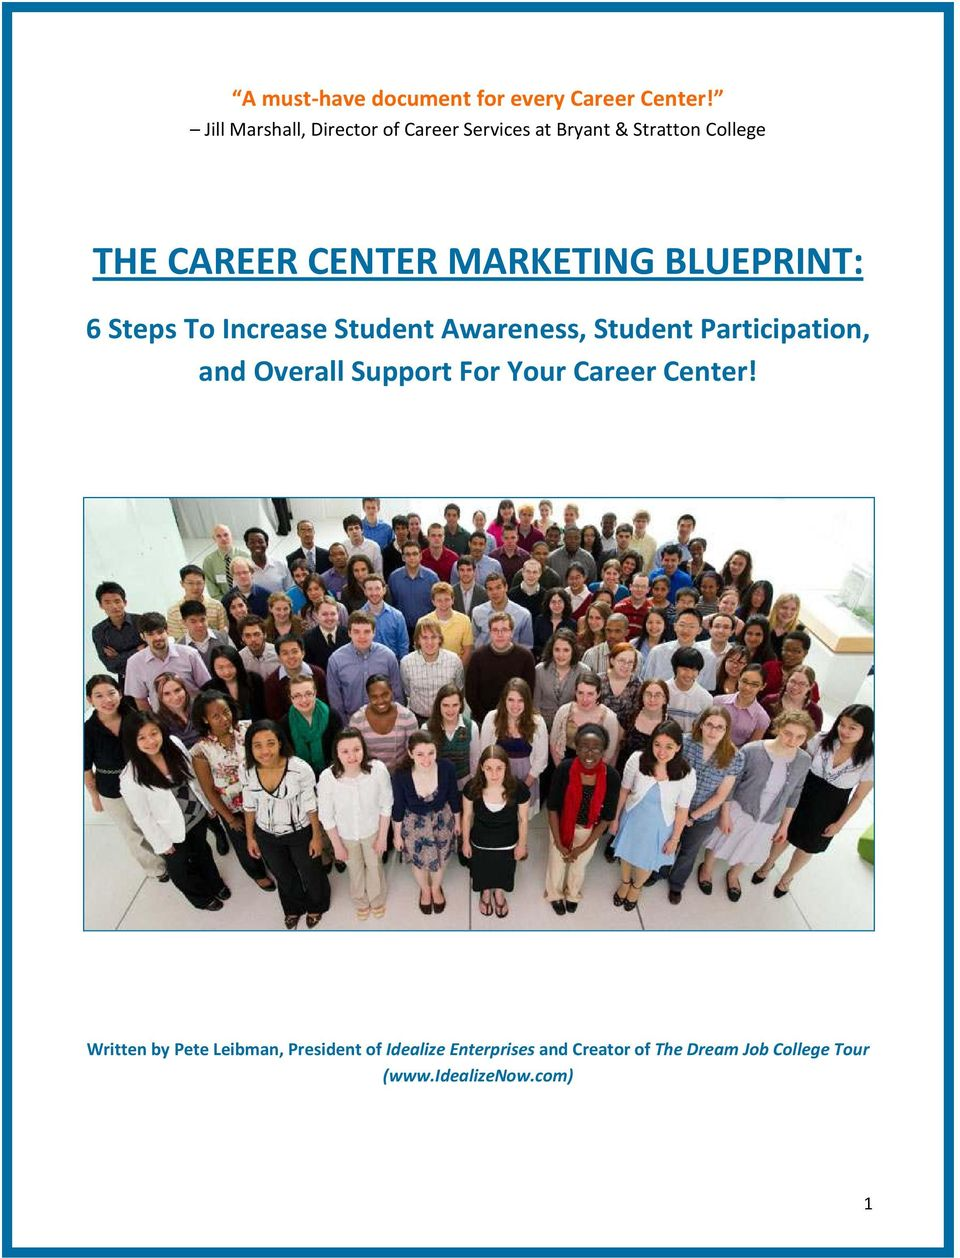 MARKETING BLUEPRINT: 6 Steps To Increase Student Awareness, Student Participation, and Overall